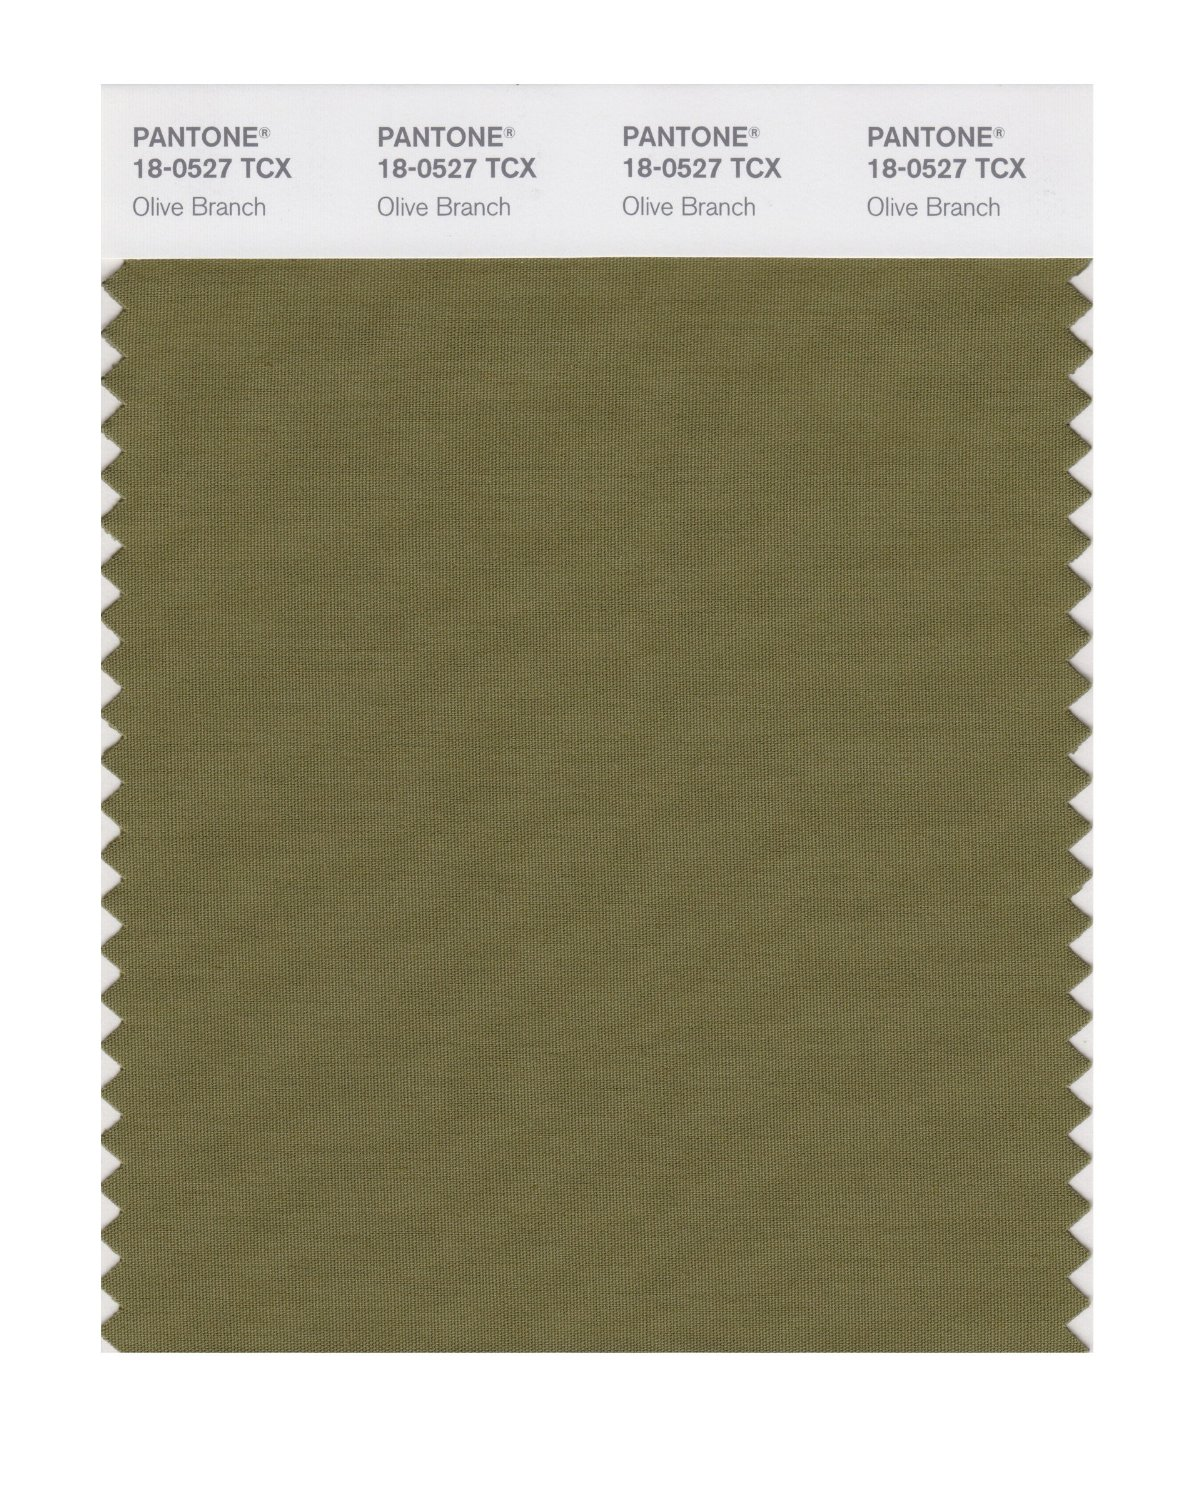 Pantone Smart Swatch 18-0527 Olive Branch